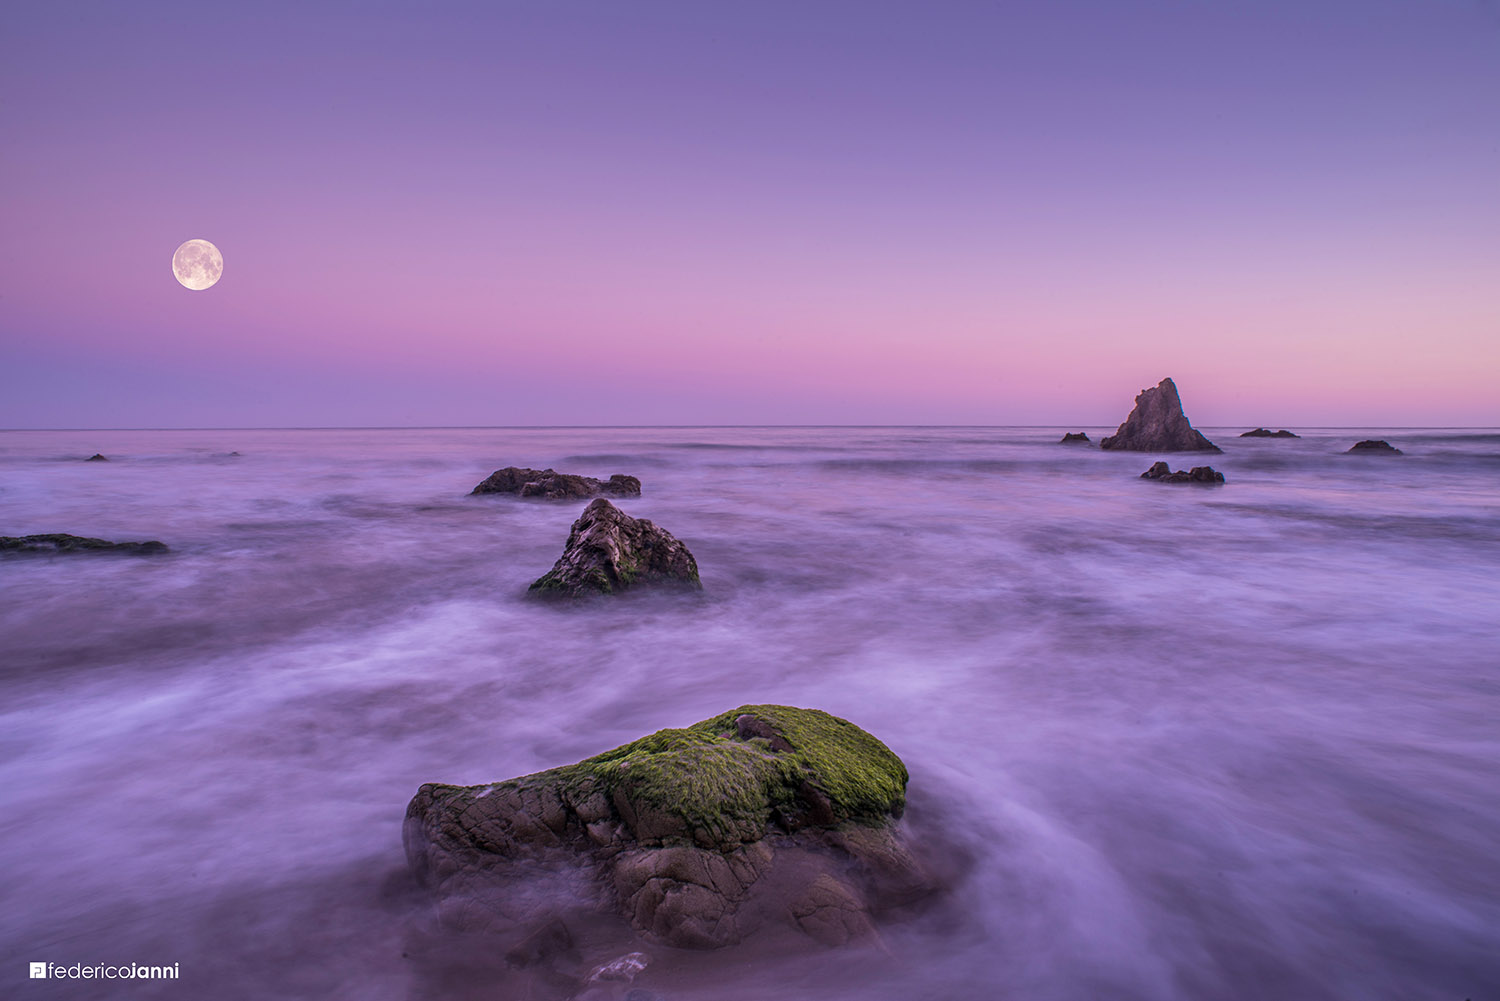 El Matador Beach, Malibu, California, United States